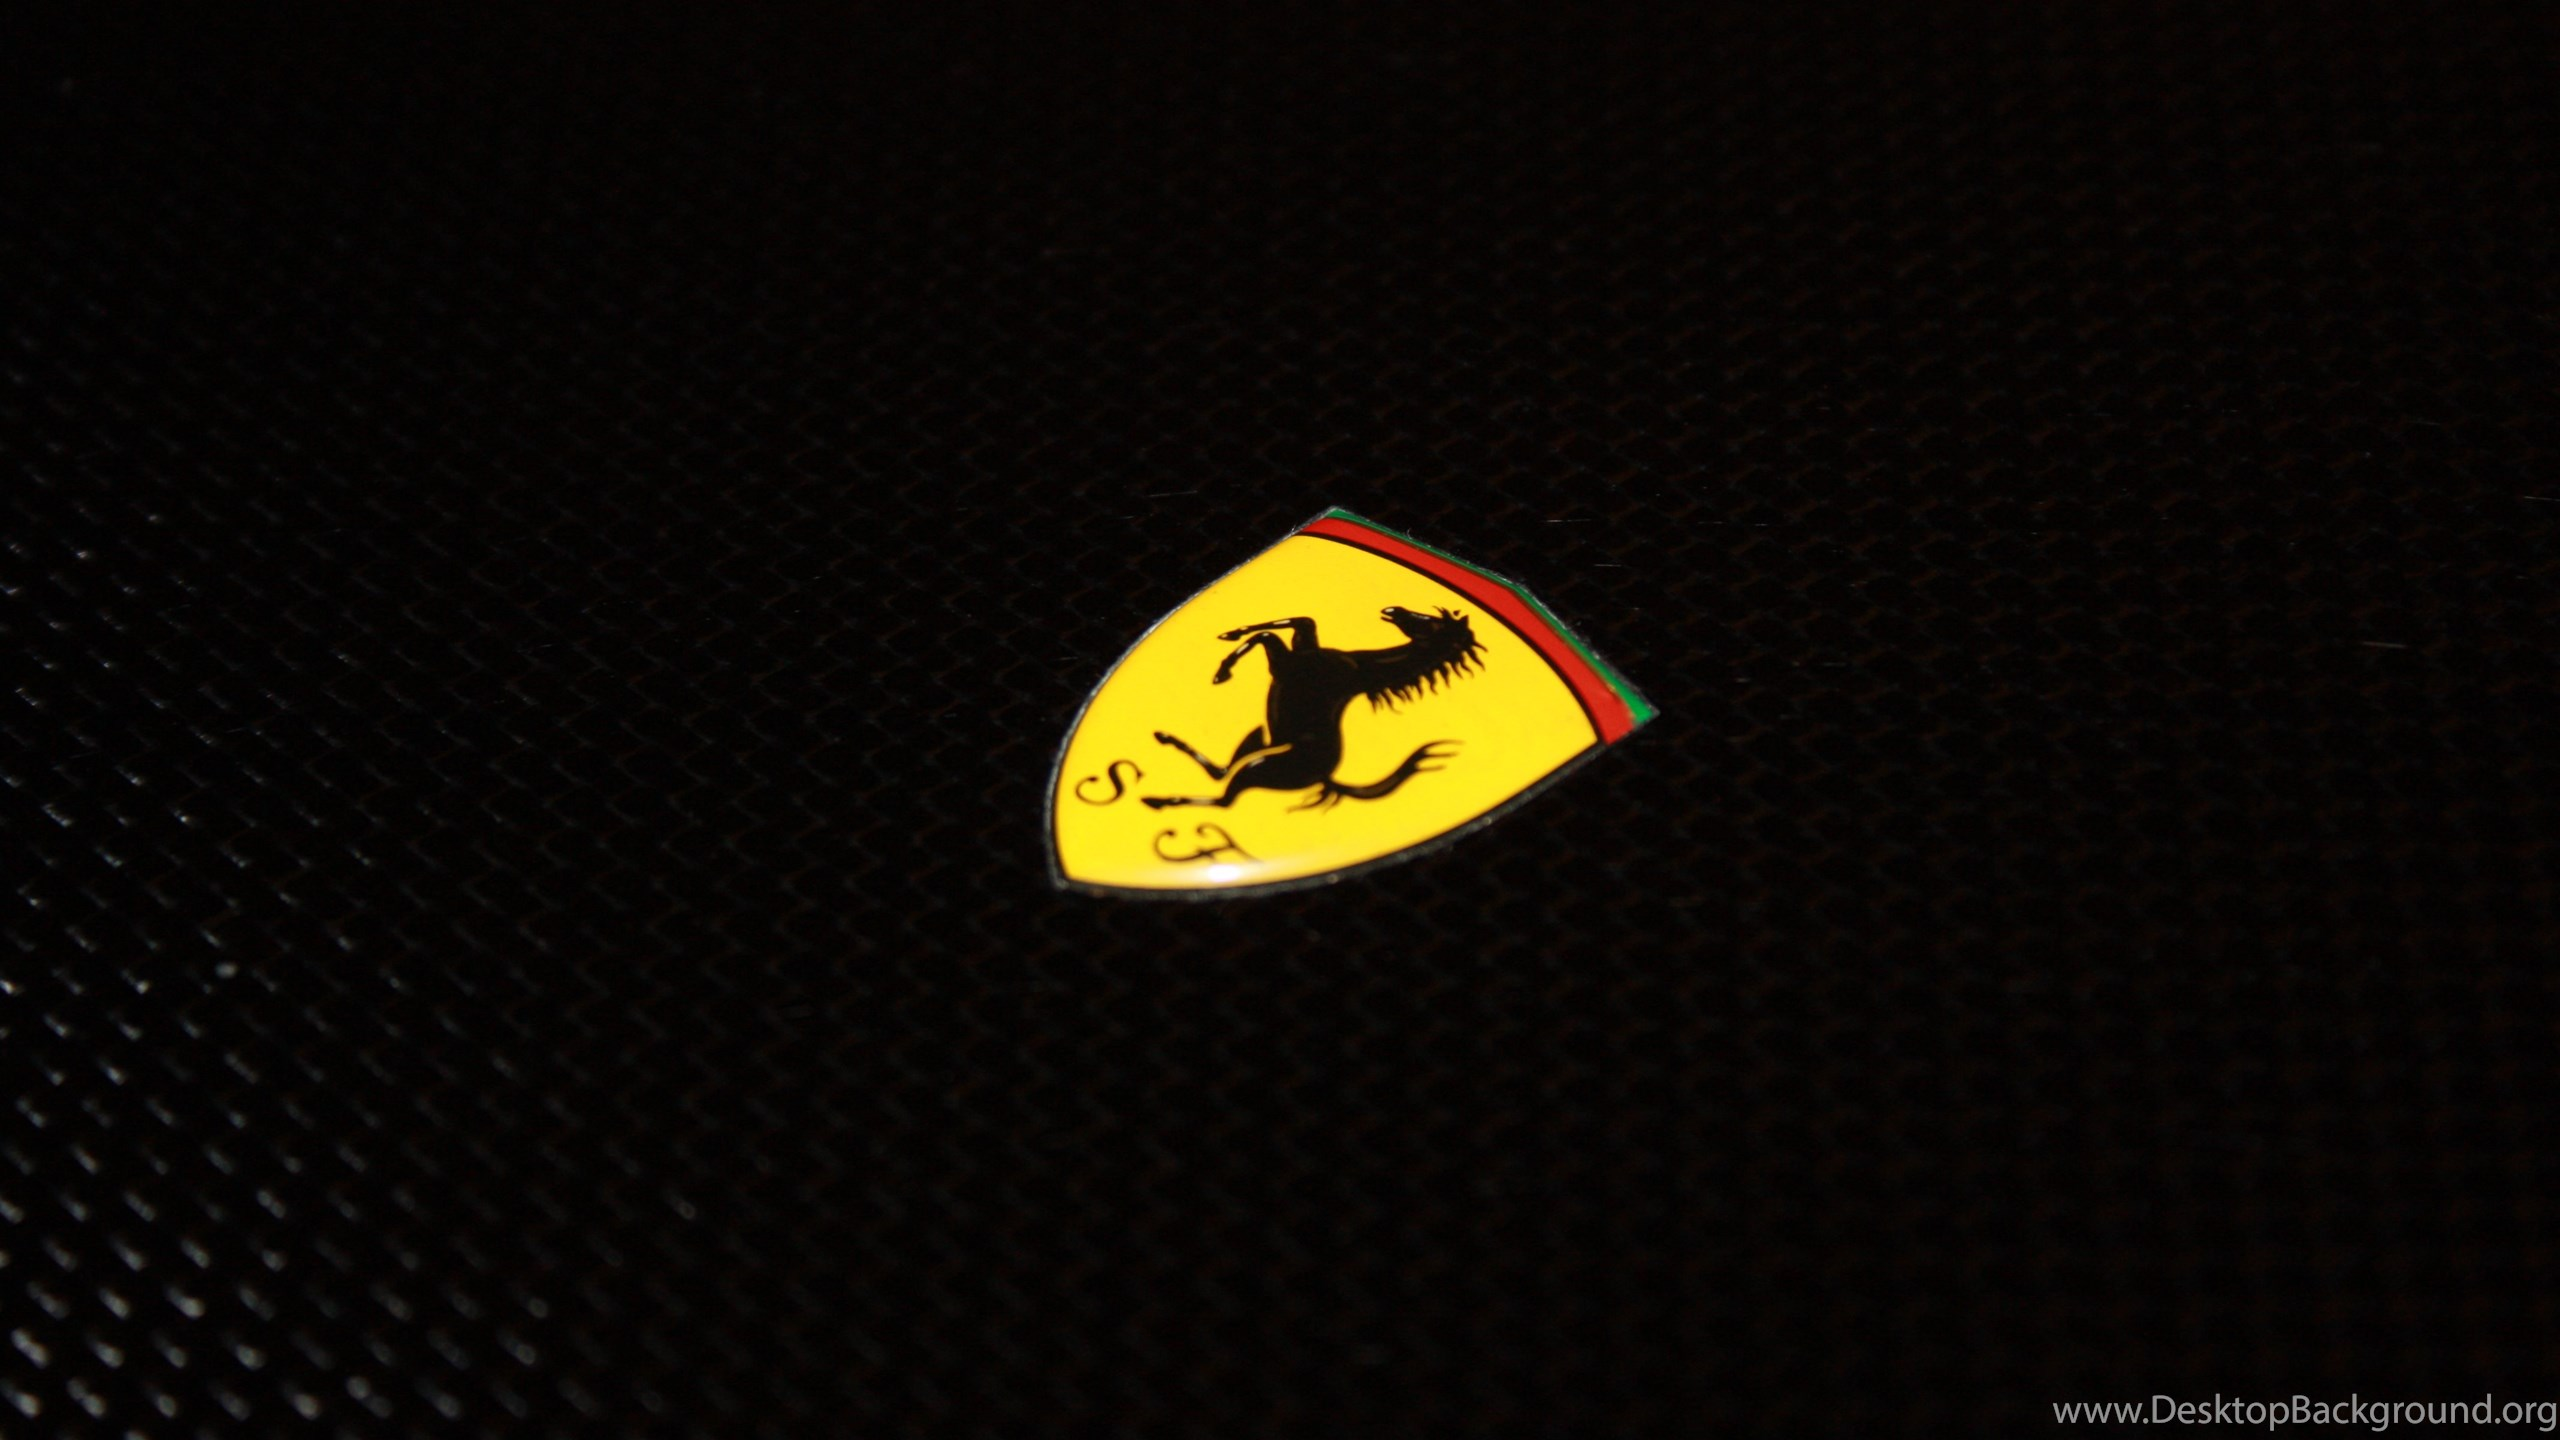 Download Ferrari Logo Wallpapers Wide Desktop Background